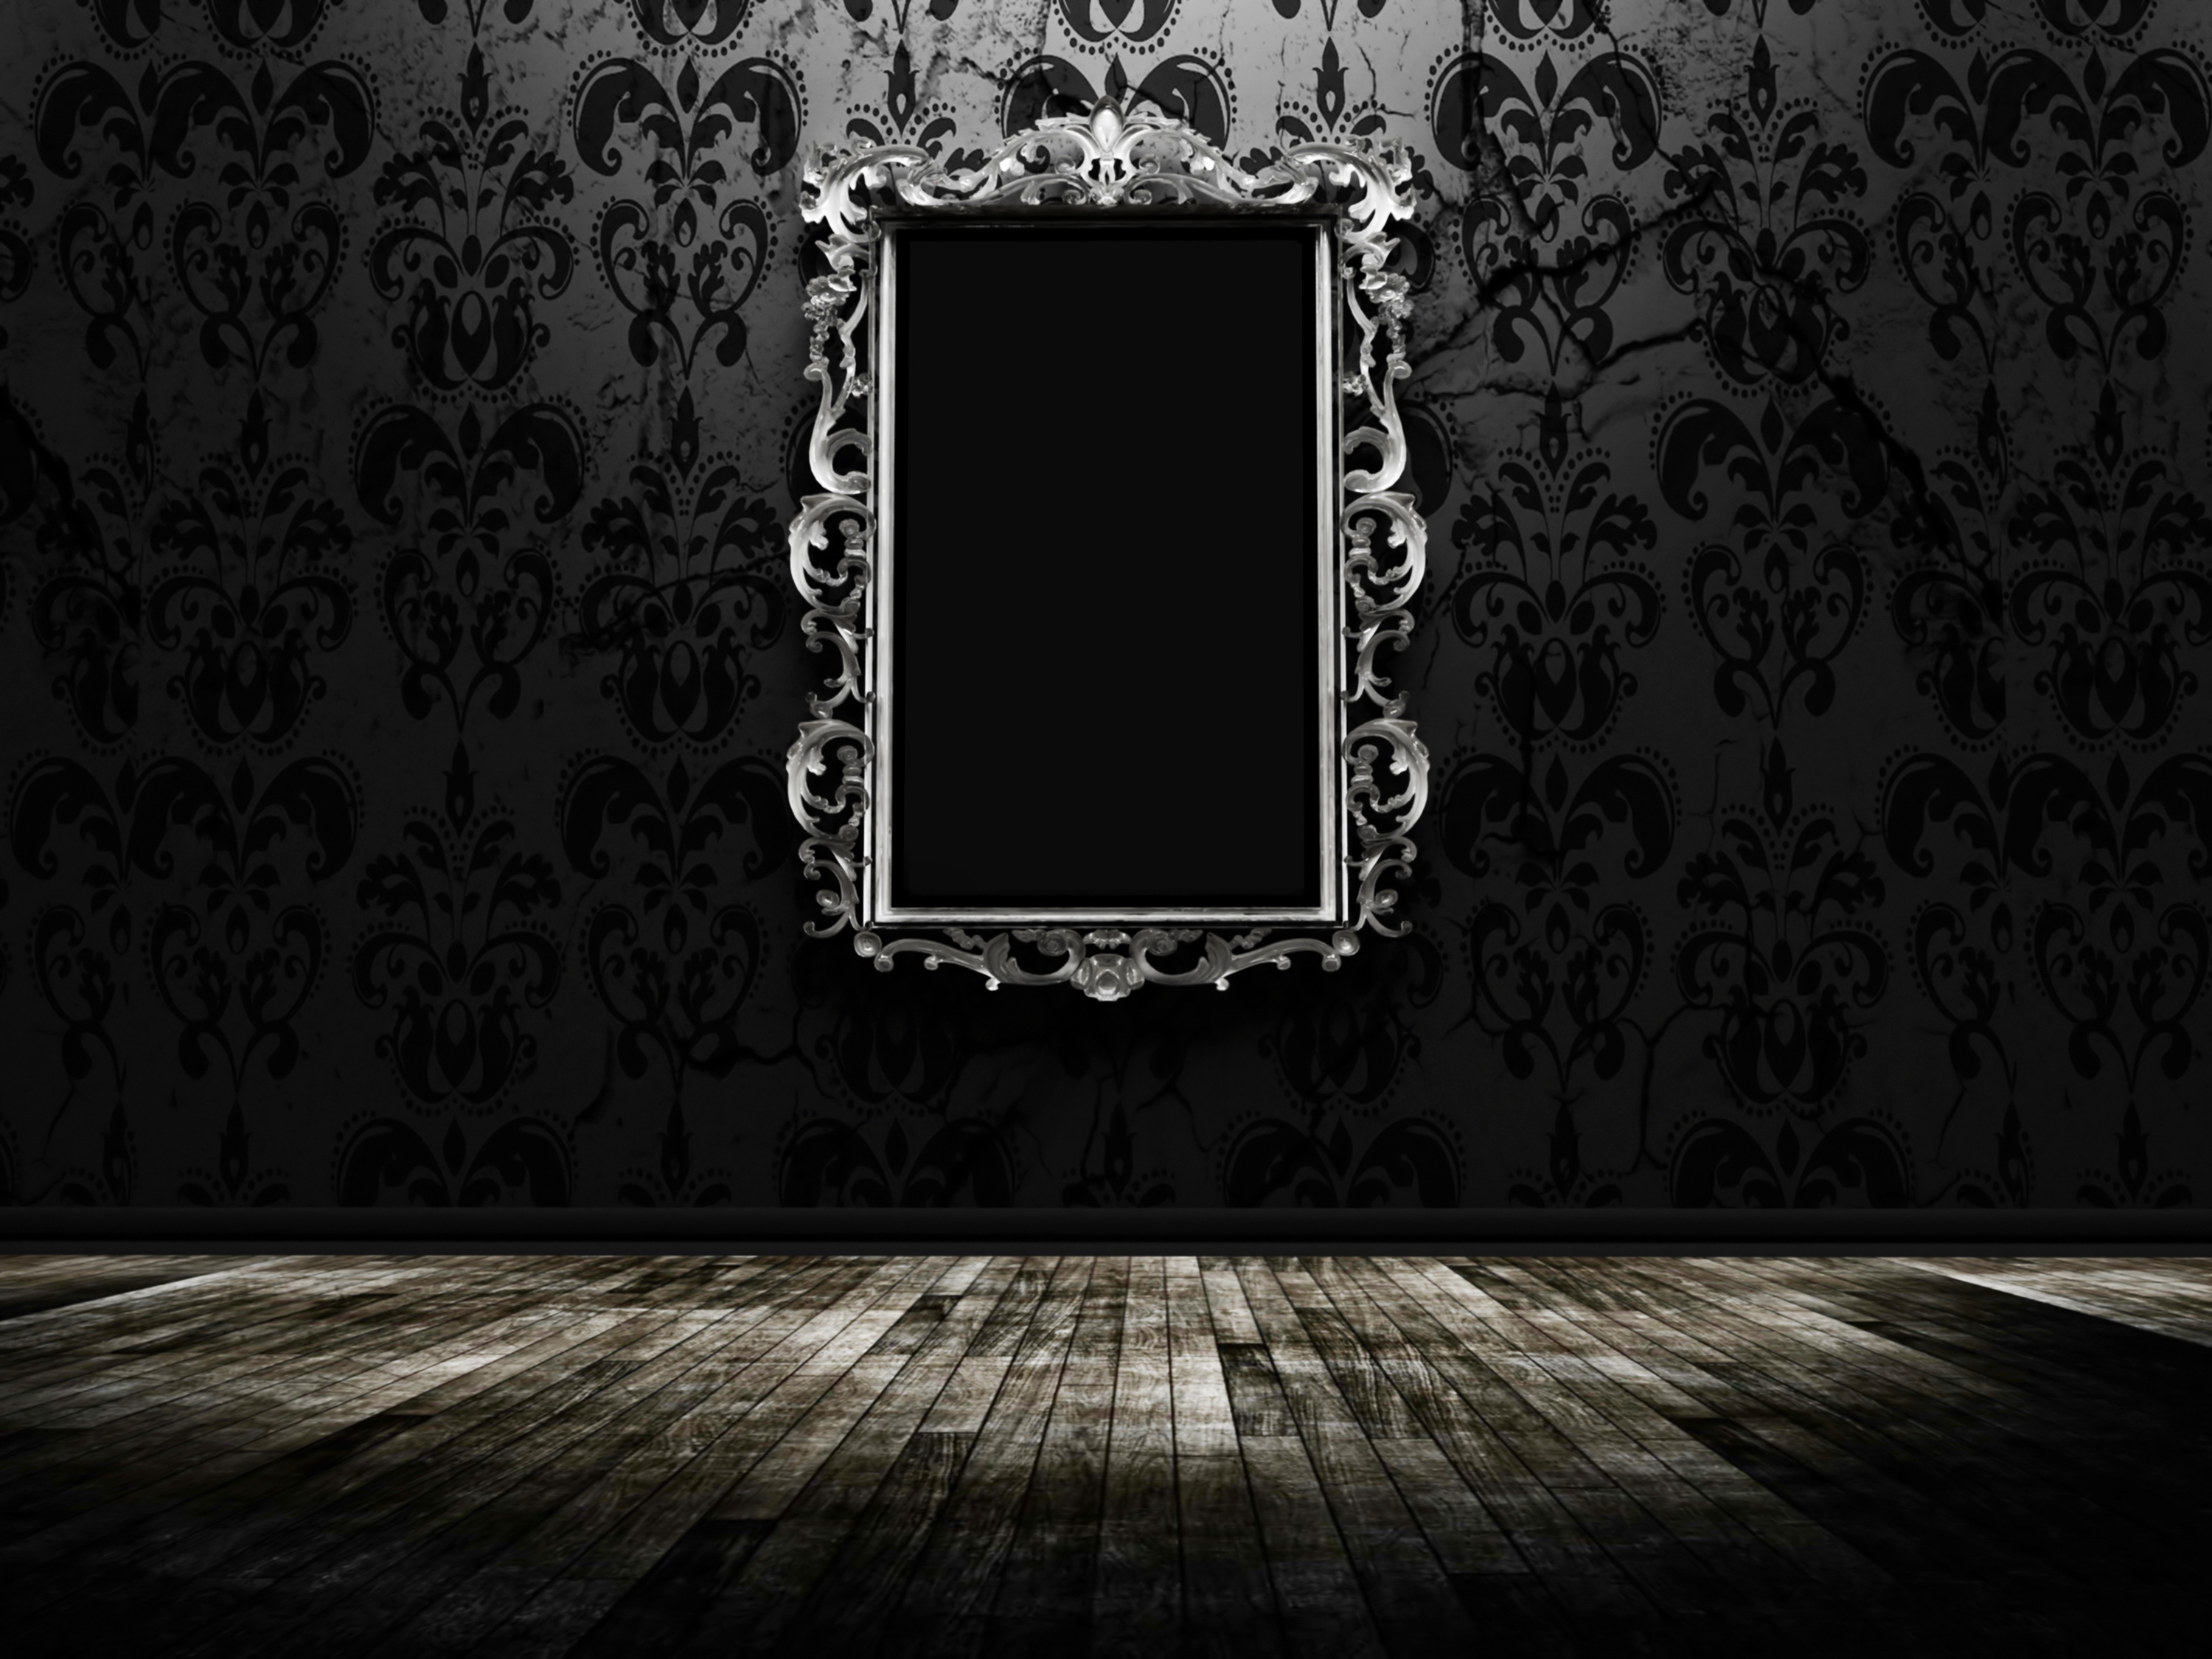 mirror mirror on the wall the compliance and ethics blog